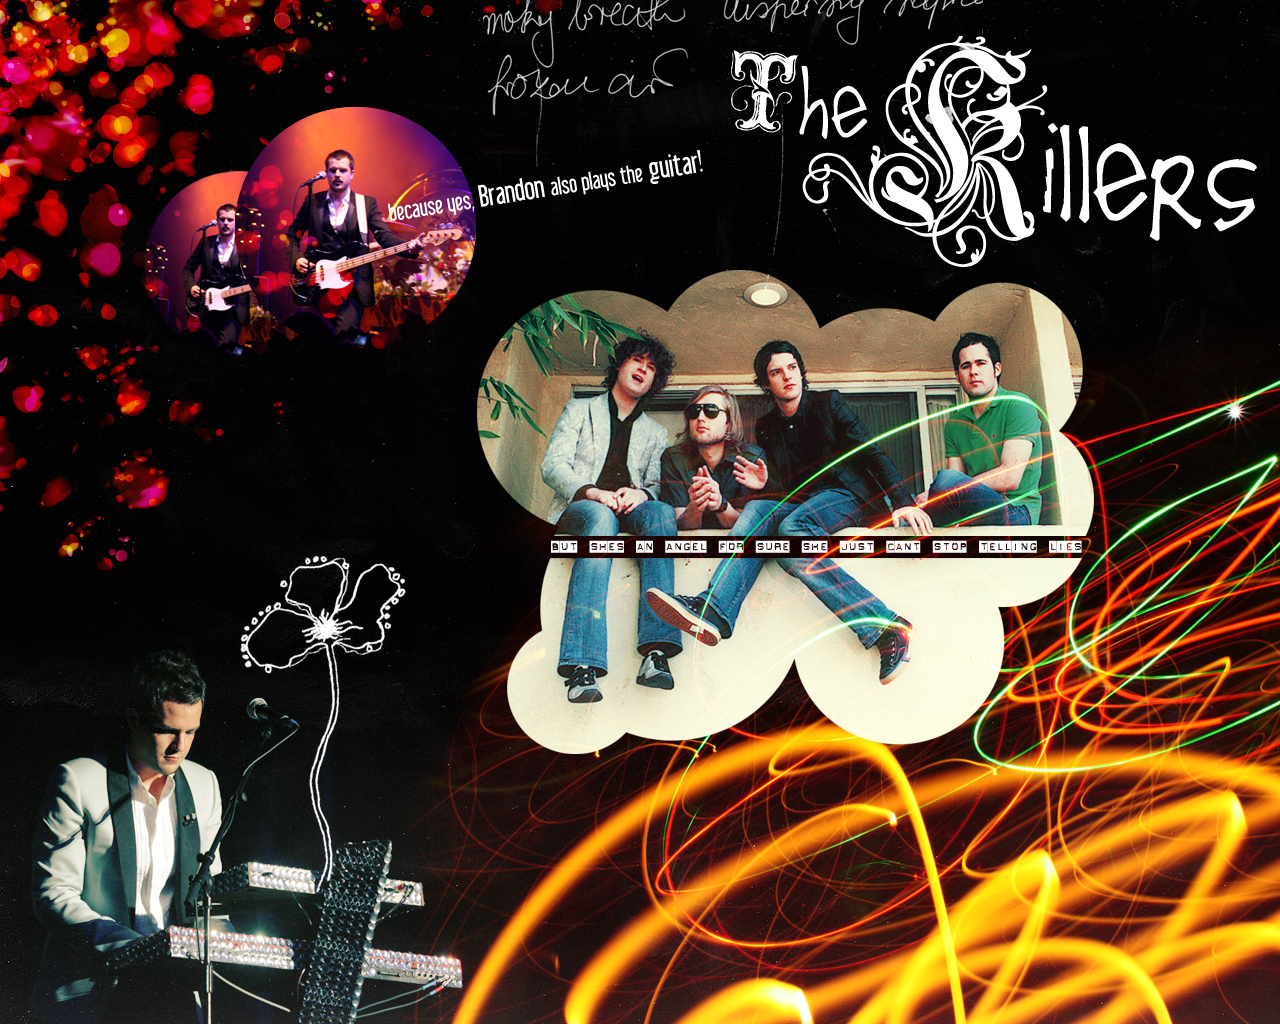 The Killers Wallpaper V2 by ~SlivErJap on deviantART